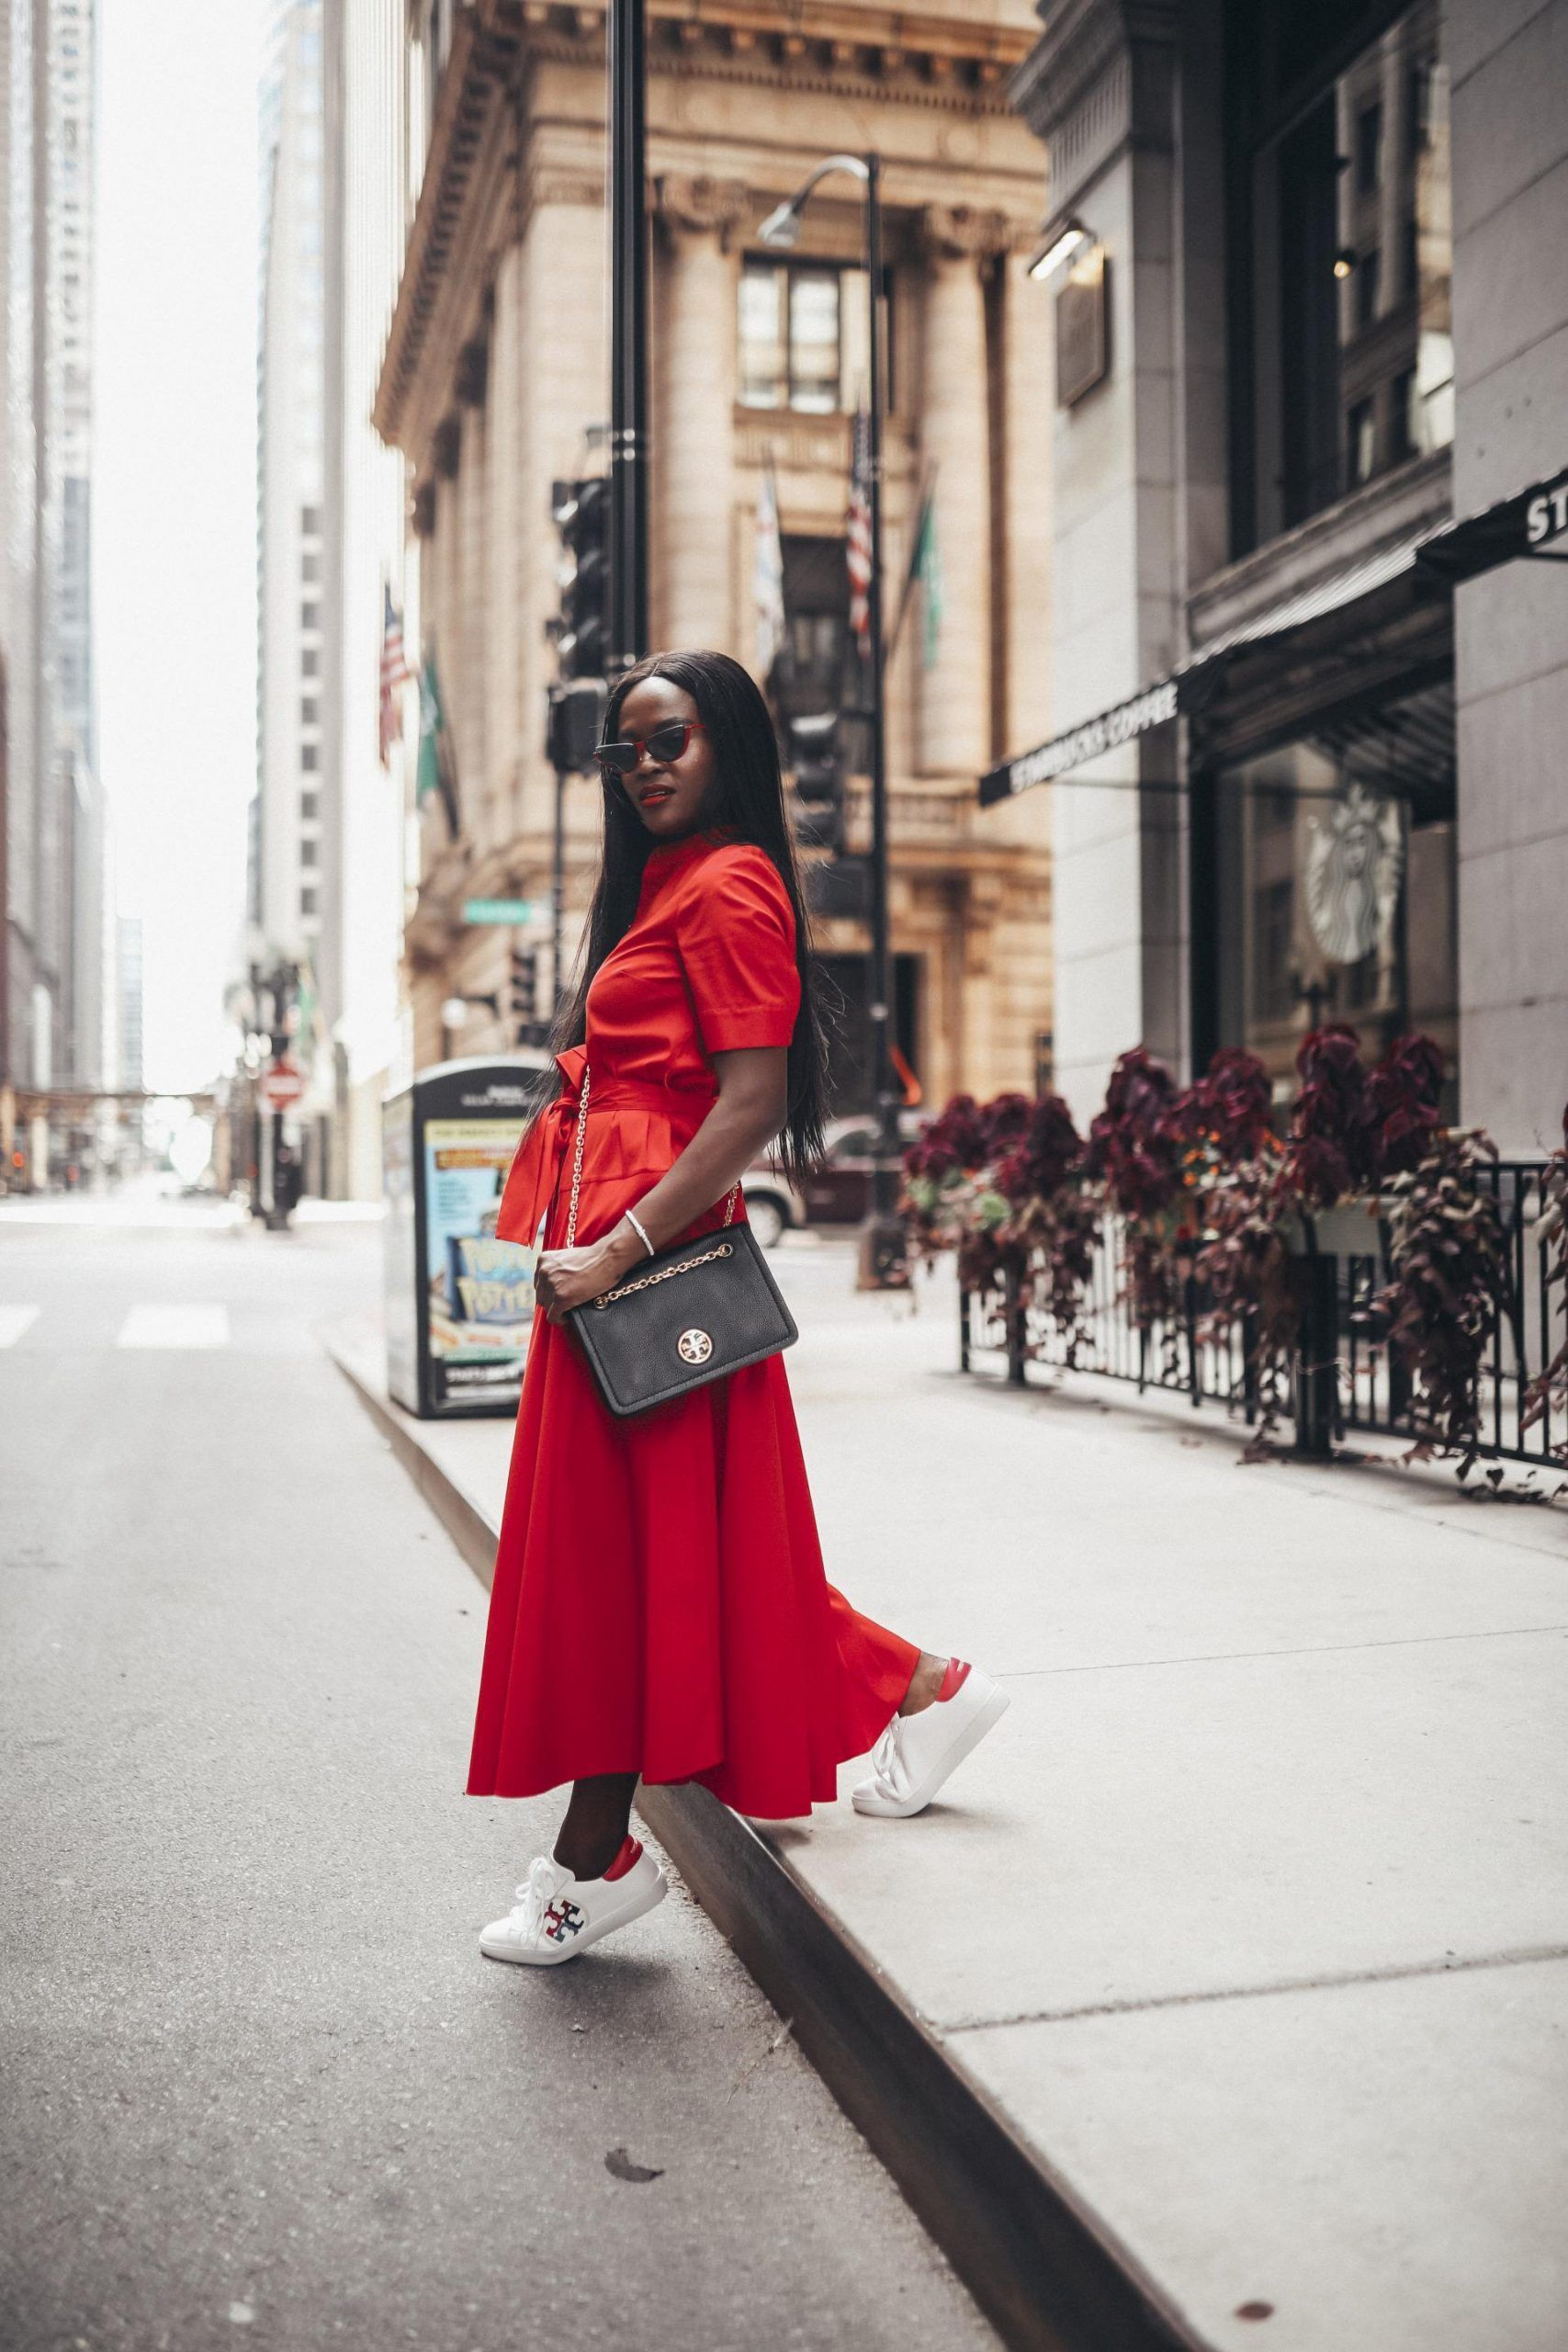 My Top Picks From The Nordstrom Anniversary Sale Cranberry Tantrums Red Shirt Dress Nordstrom Anniversary Sale Style [ 2560 x 1707 Pixel ]